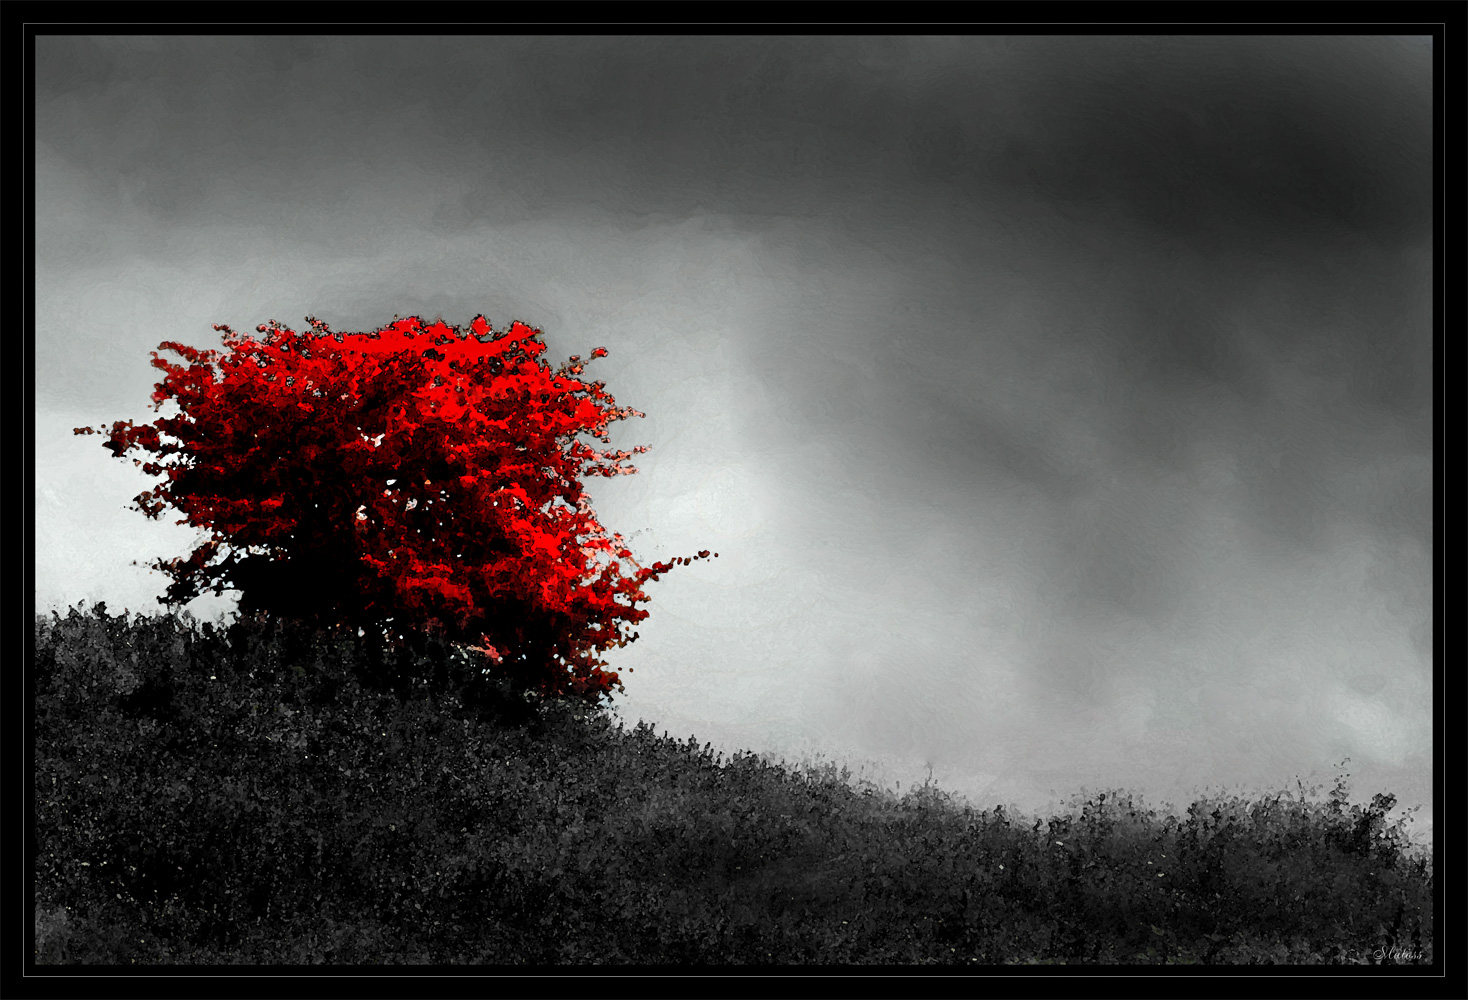 Lonely tree, Art, Clouds, Edited, Framed, HQ Photo